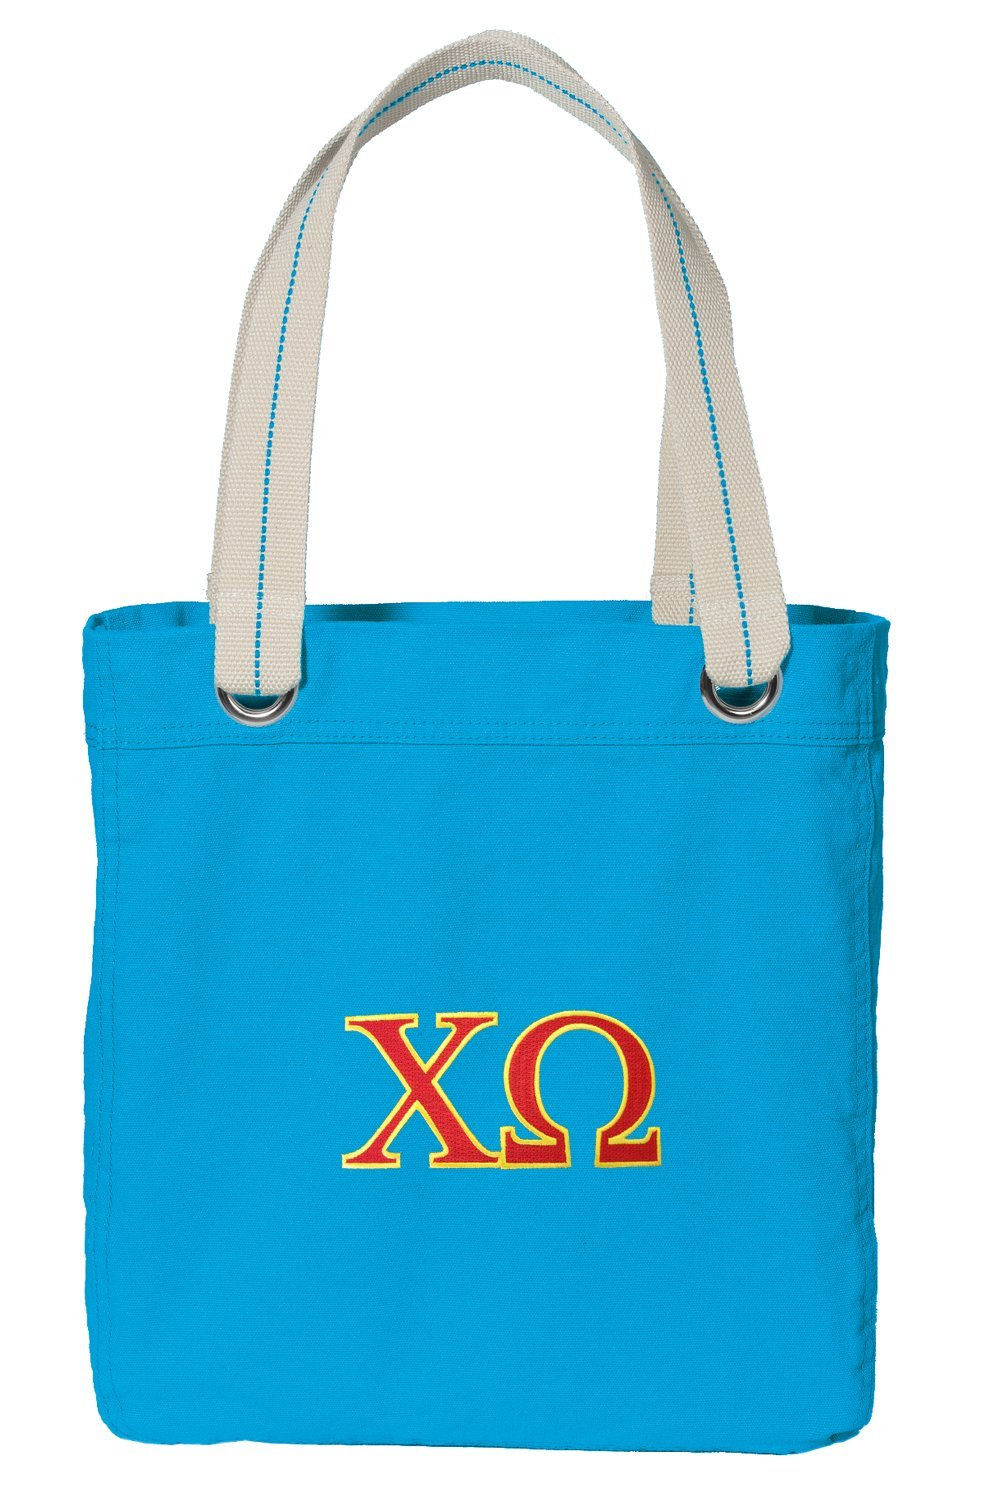 Chi Omega Tote Bag DELUXE Dye Washed COTTON CANVAS Turquoise